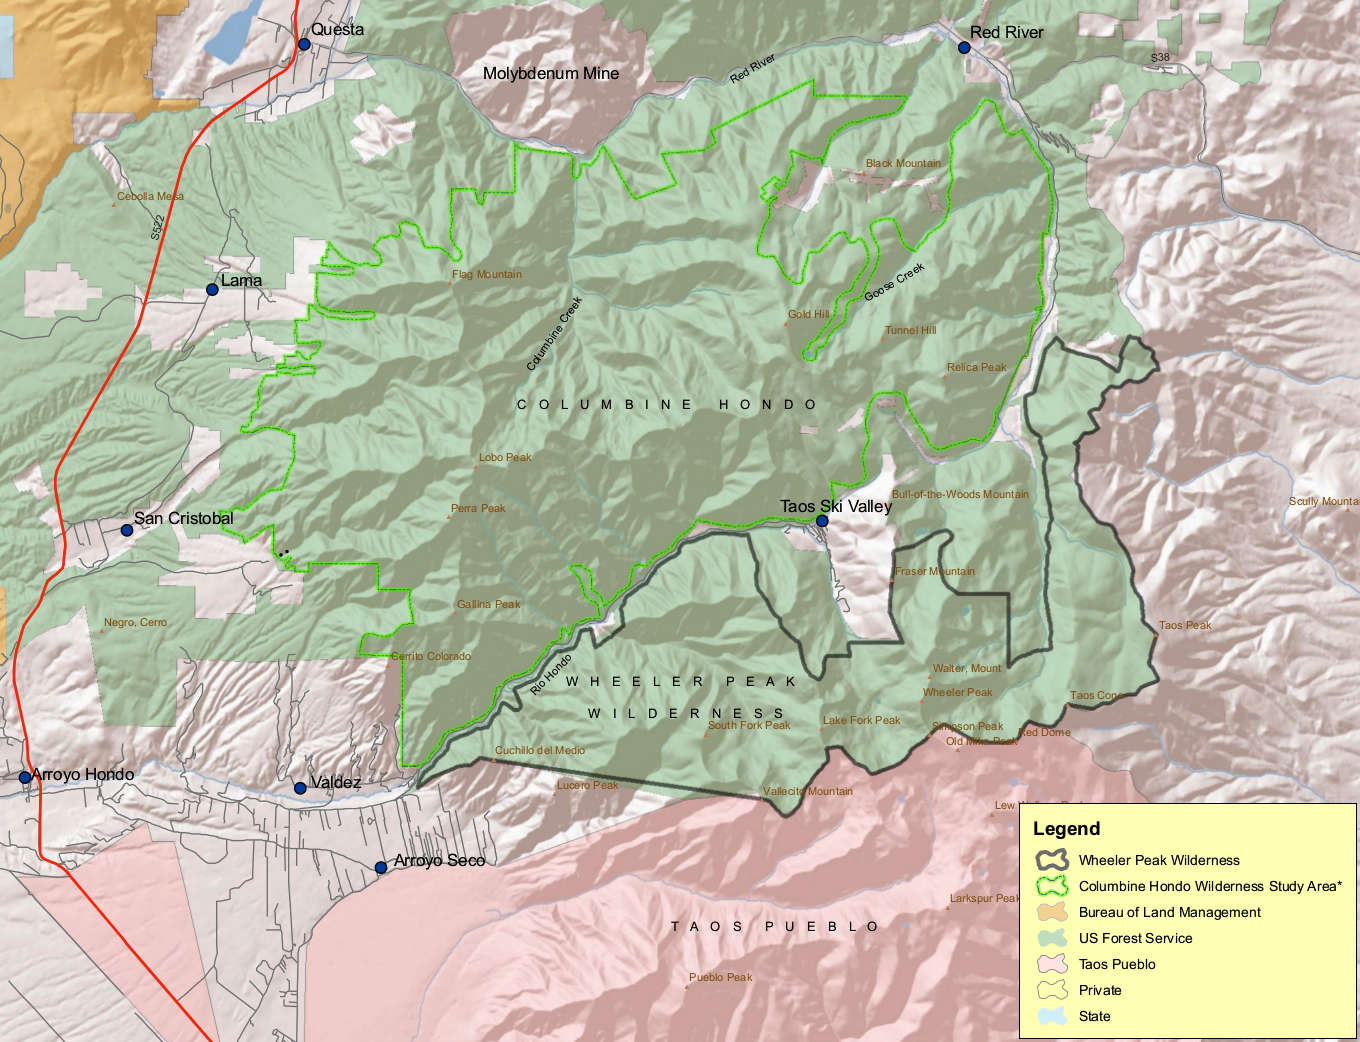 http://www.thearmchairexplorer.com/new-mexico/n-images/wildernessmaps/columbine-hondo-wilderness-map01big.jpg